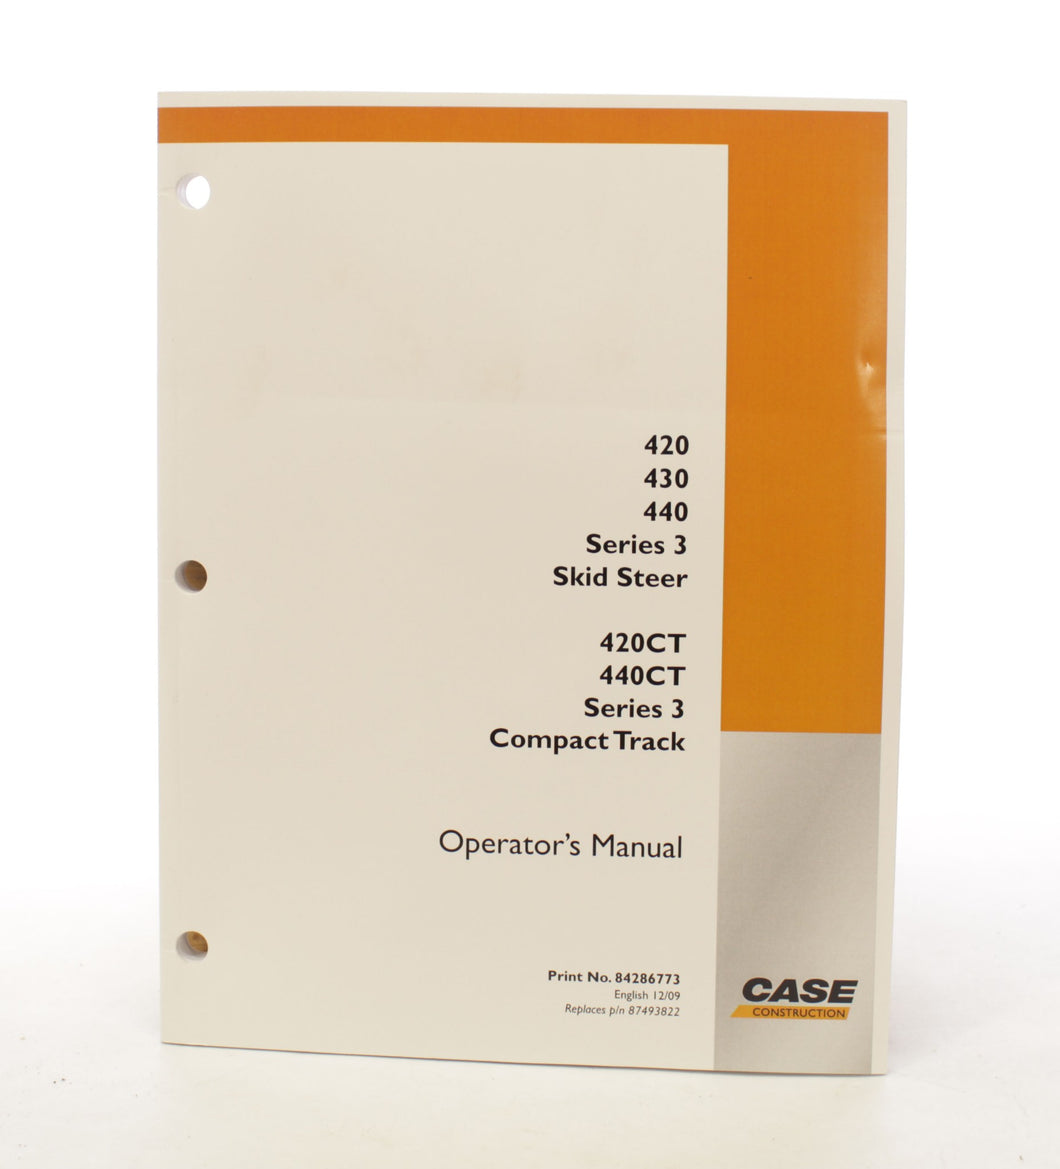 Case 420 430 Series 3 Skid Steer Series 3 Compact Track Operator's Manual